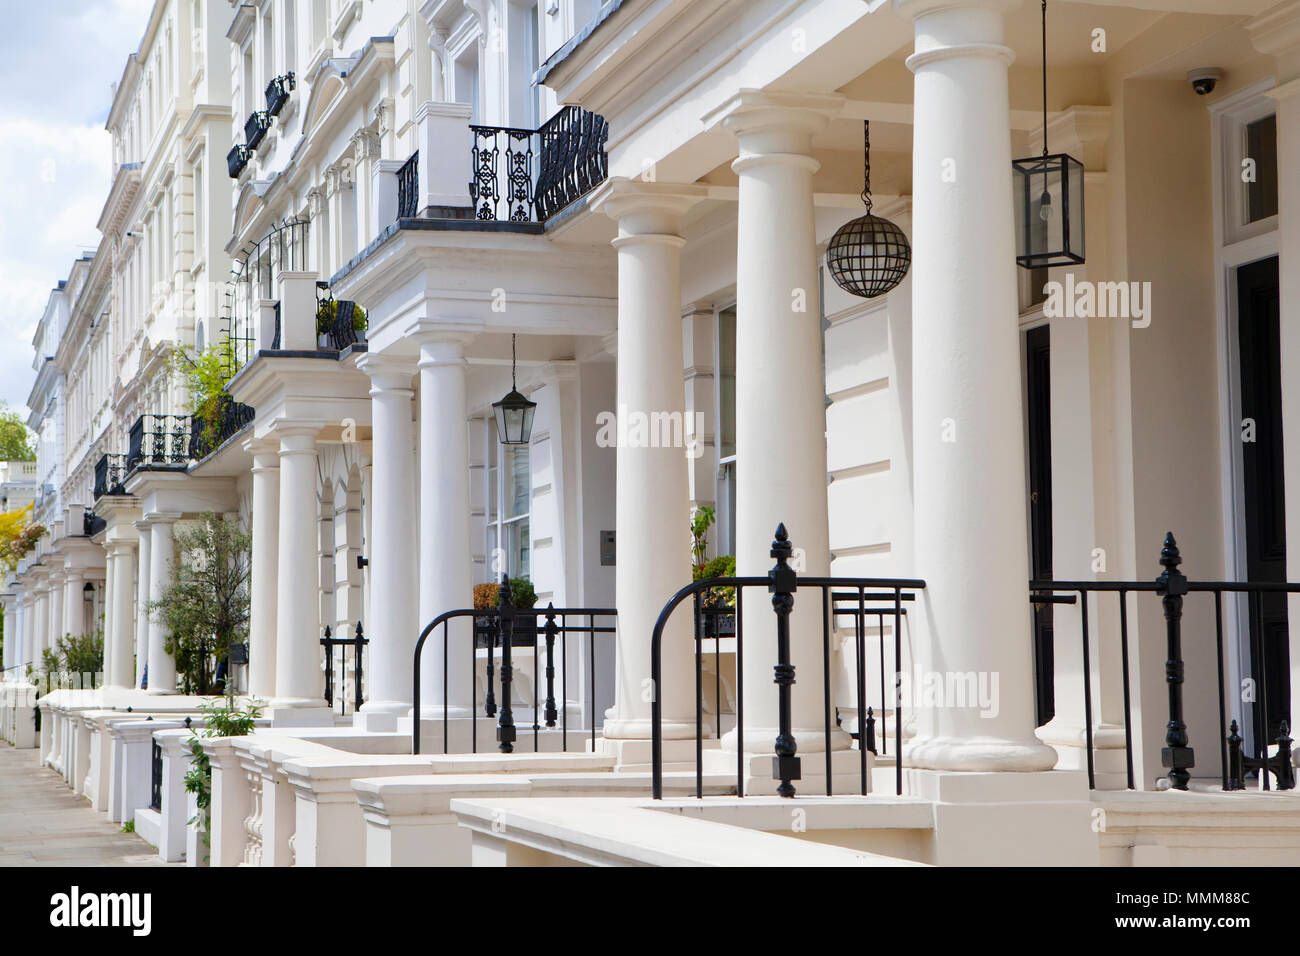 LONDON, UK - MAY 10th, 2018: Beautifull houses in Notting Hill.The area is known for being a cosmopolitan neighbourhood, hosting the annual Notting Hi - Stock Image